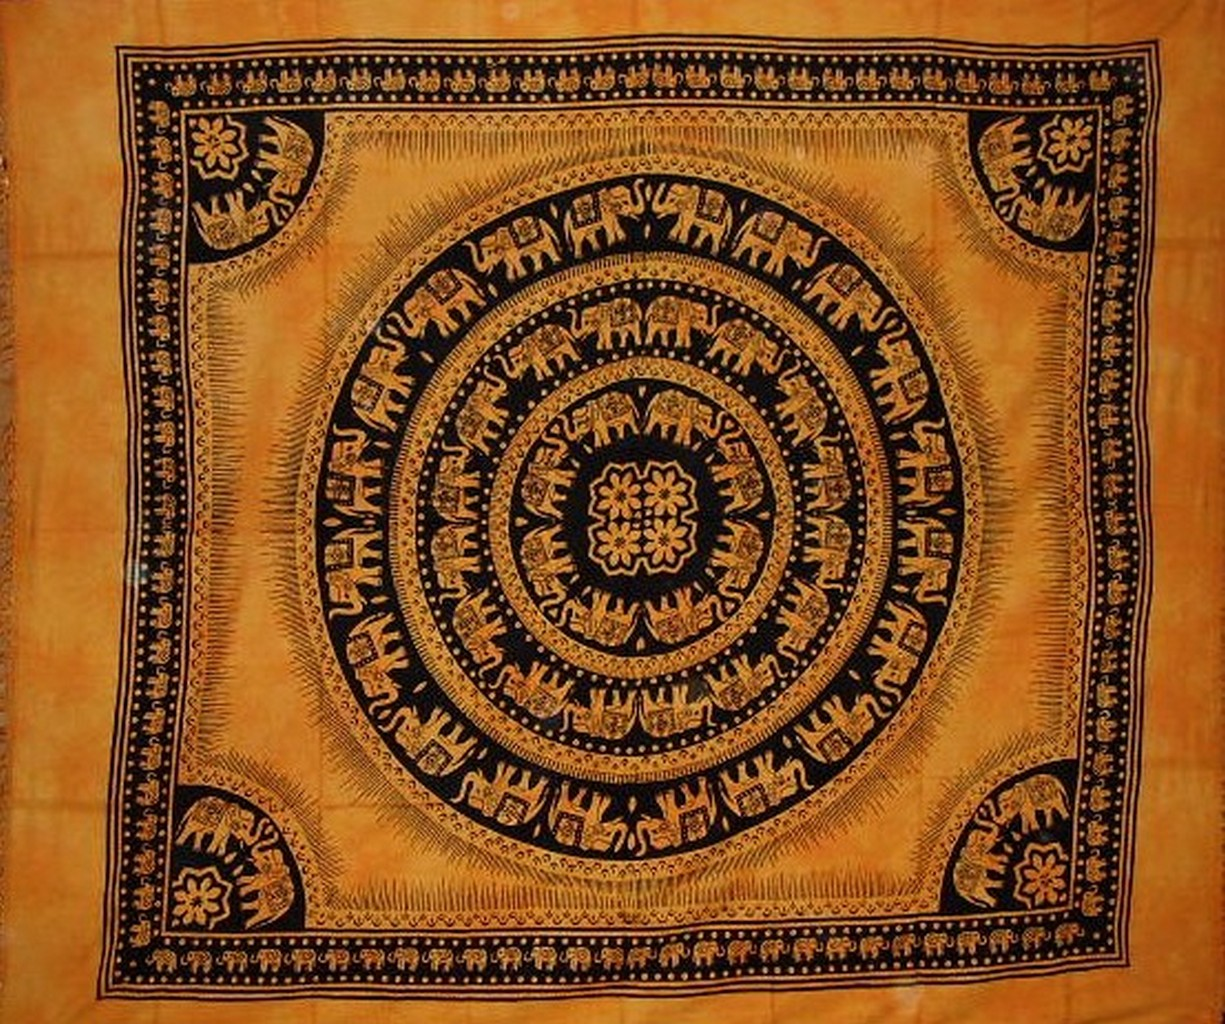 "Mandala Elephant Tapestry Cotton Bedspread 92"" x 82"" Full Saffron by India Arts"